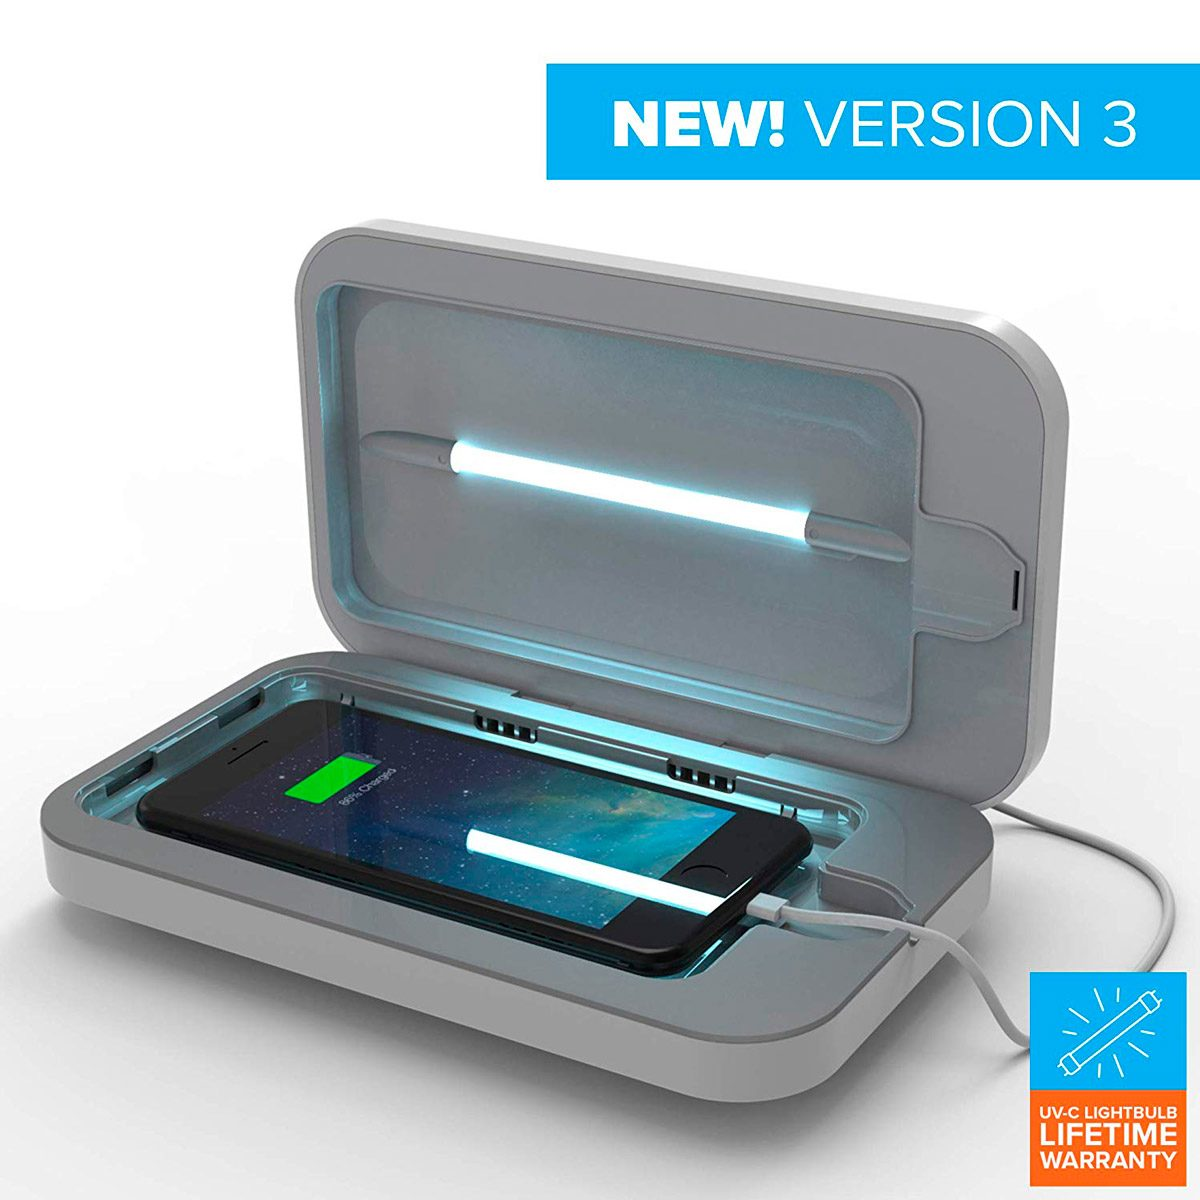 Phone soap sanitizer and charger